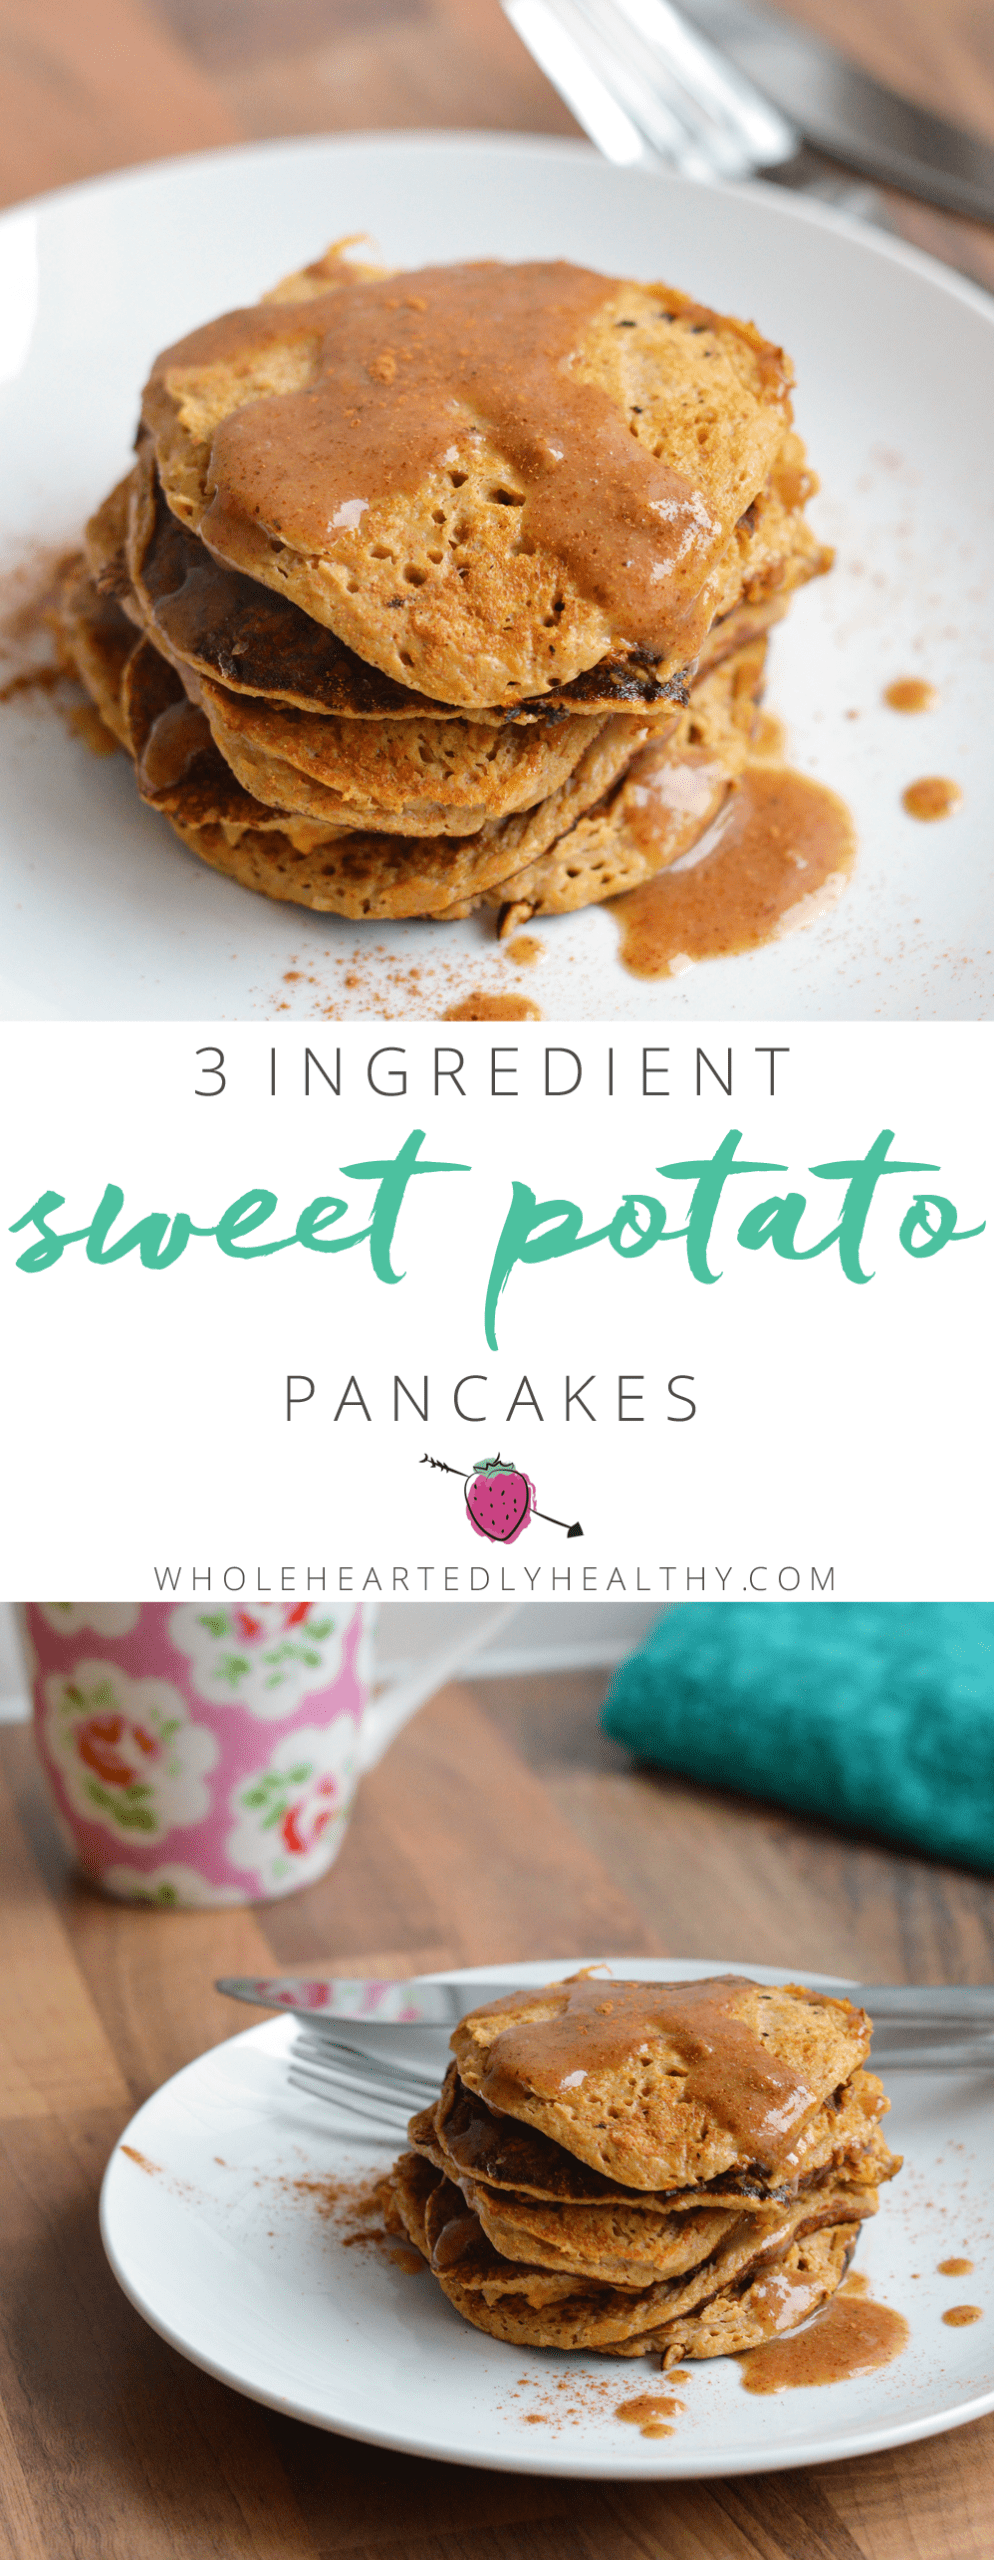 3 ingredient sweet potato pancakes edited 1